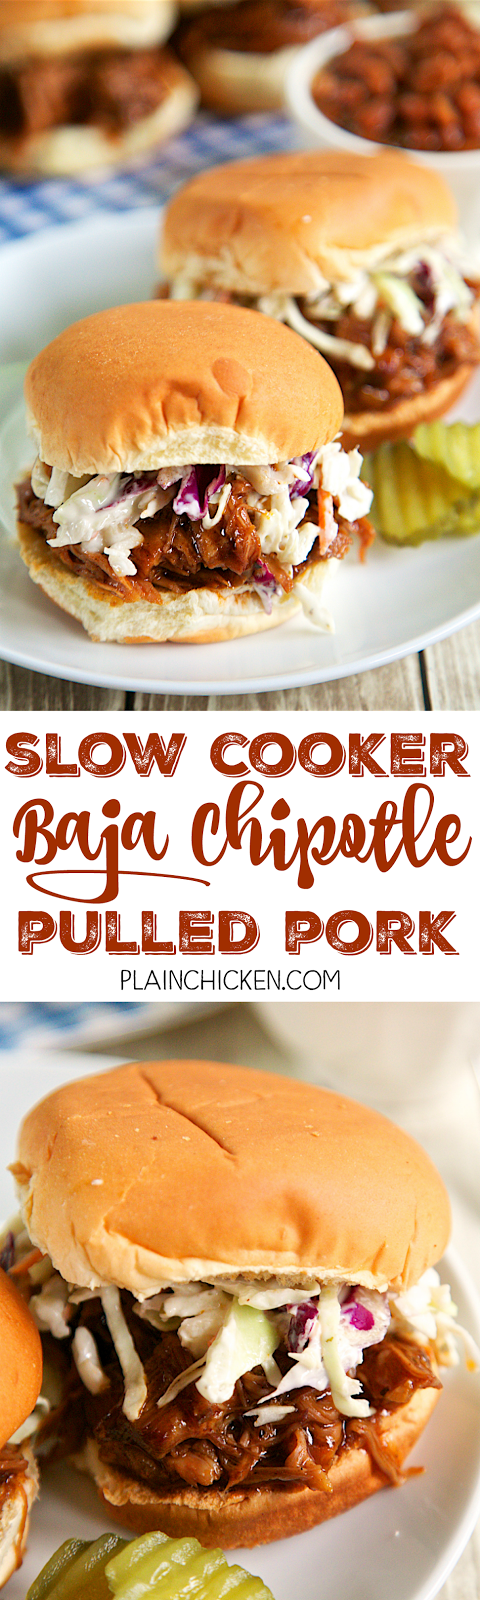 Slow Cooker Baja Chipotle Pulled Pork - only 4 ingredients! A little sweet and a little spicy. Cooks all day in the crock-pot. SO easy and it tastes AMAZING! Great for a crowd and tailgating! Serve as a sandwich, on a baked potato, over a salad or on top of nachos!